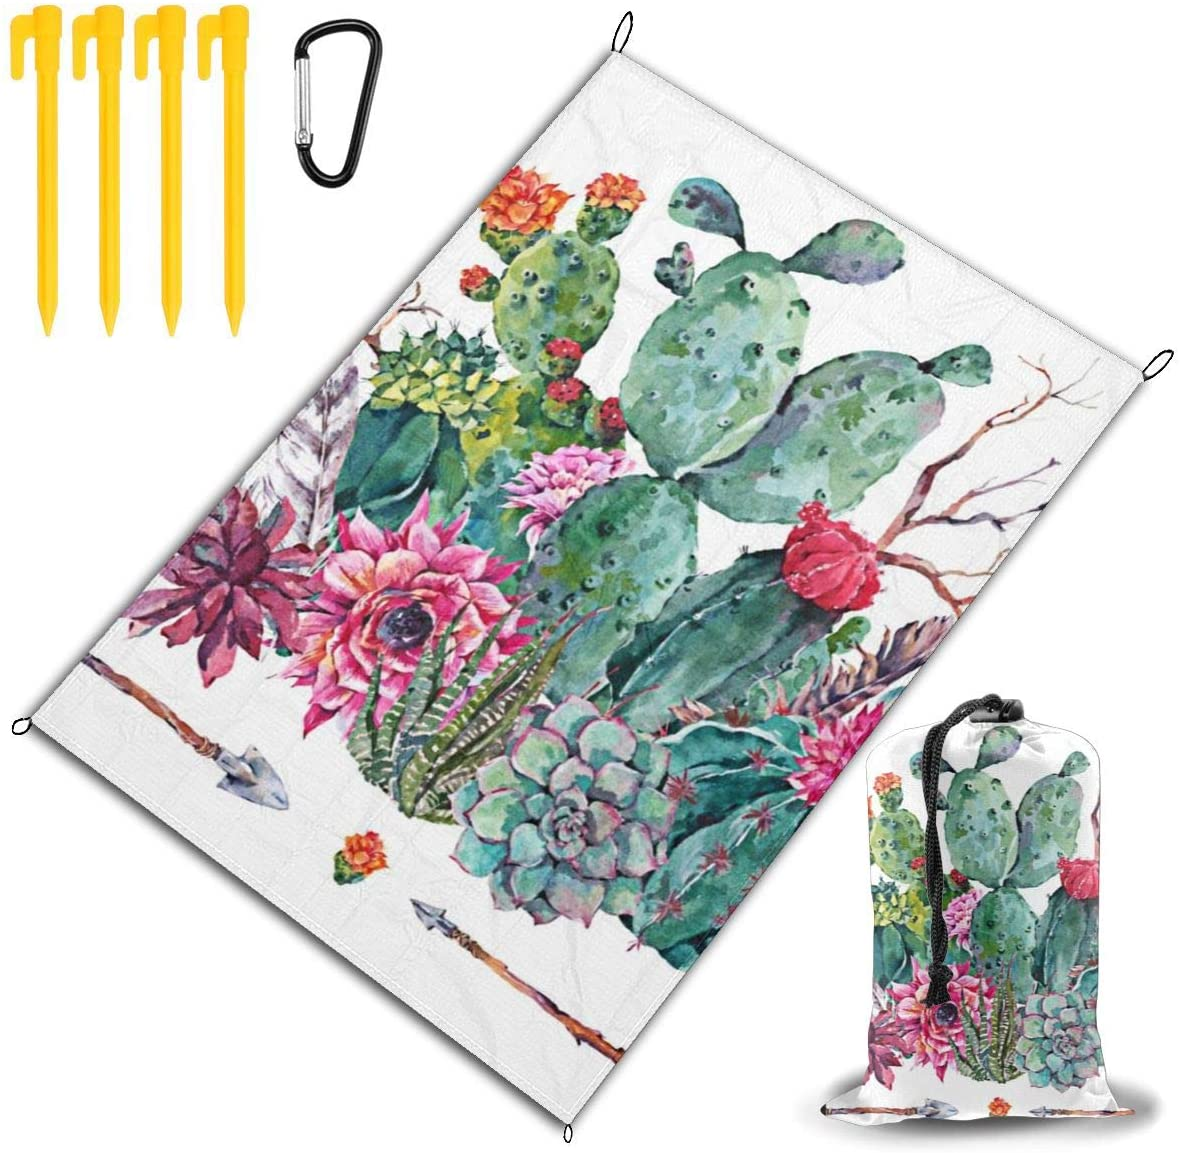 Beach Picnic Blanket Bouquet In Boho Cactus Succulent Flowers Weather-Proof Oversized Outdoor Handy Mat Sand Proof Camping Travelling Accessories Folding Family Tote On Grass Hiking Quick Dry Bag